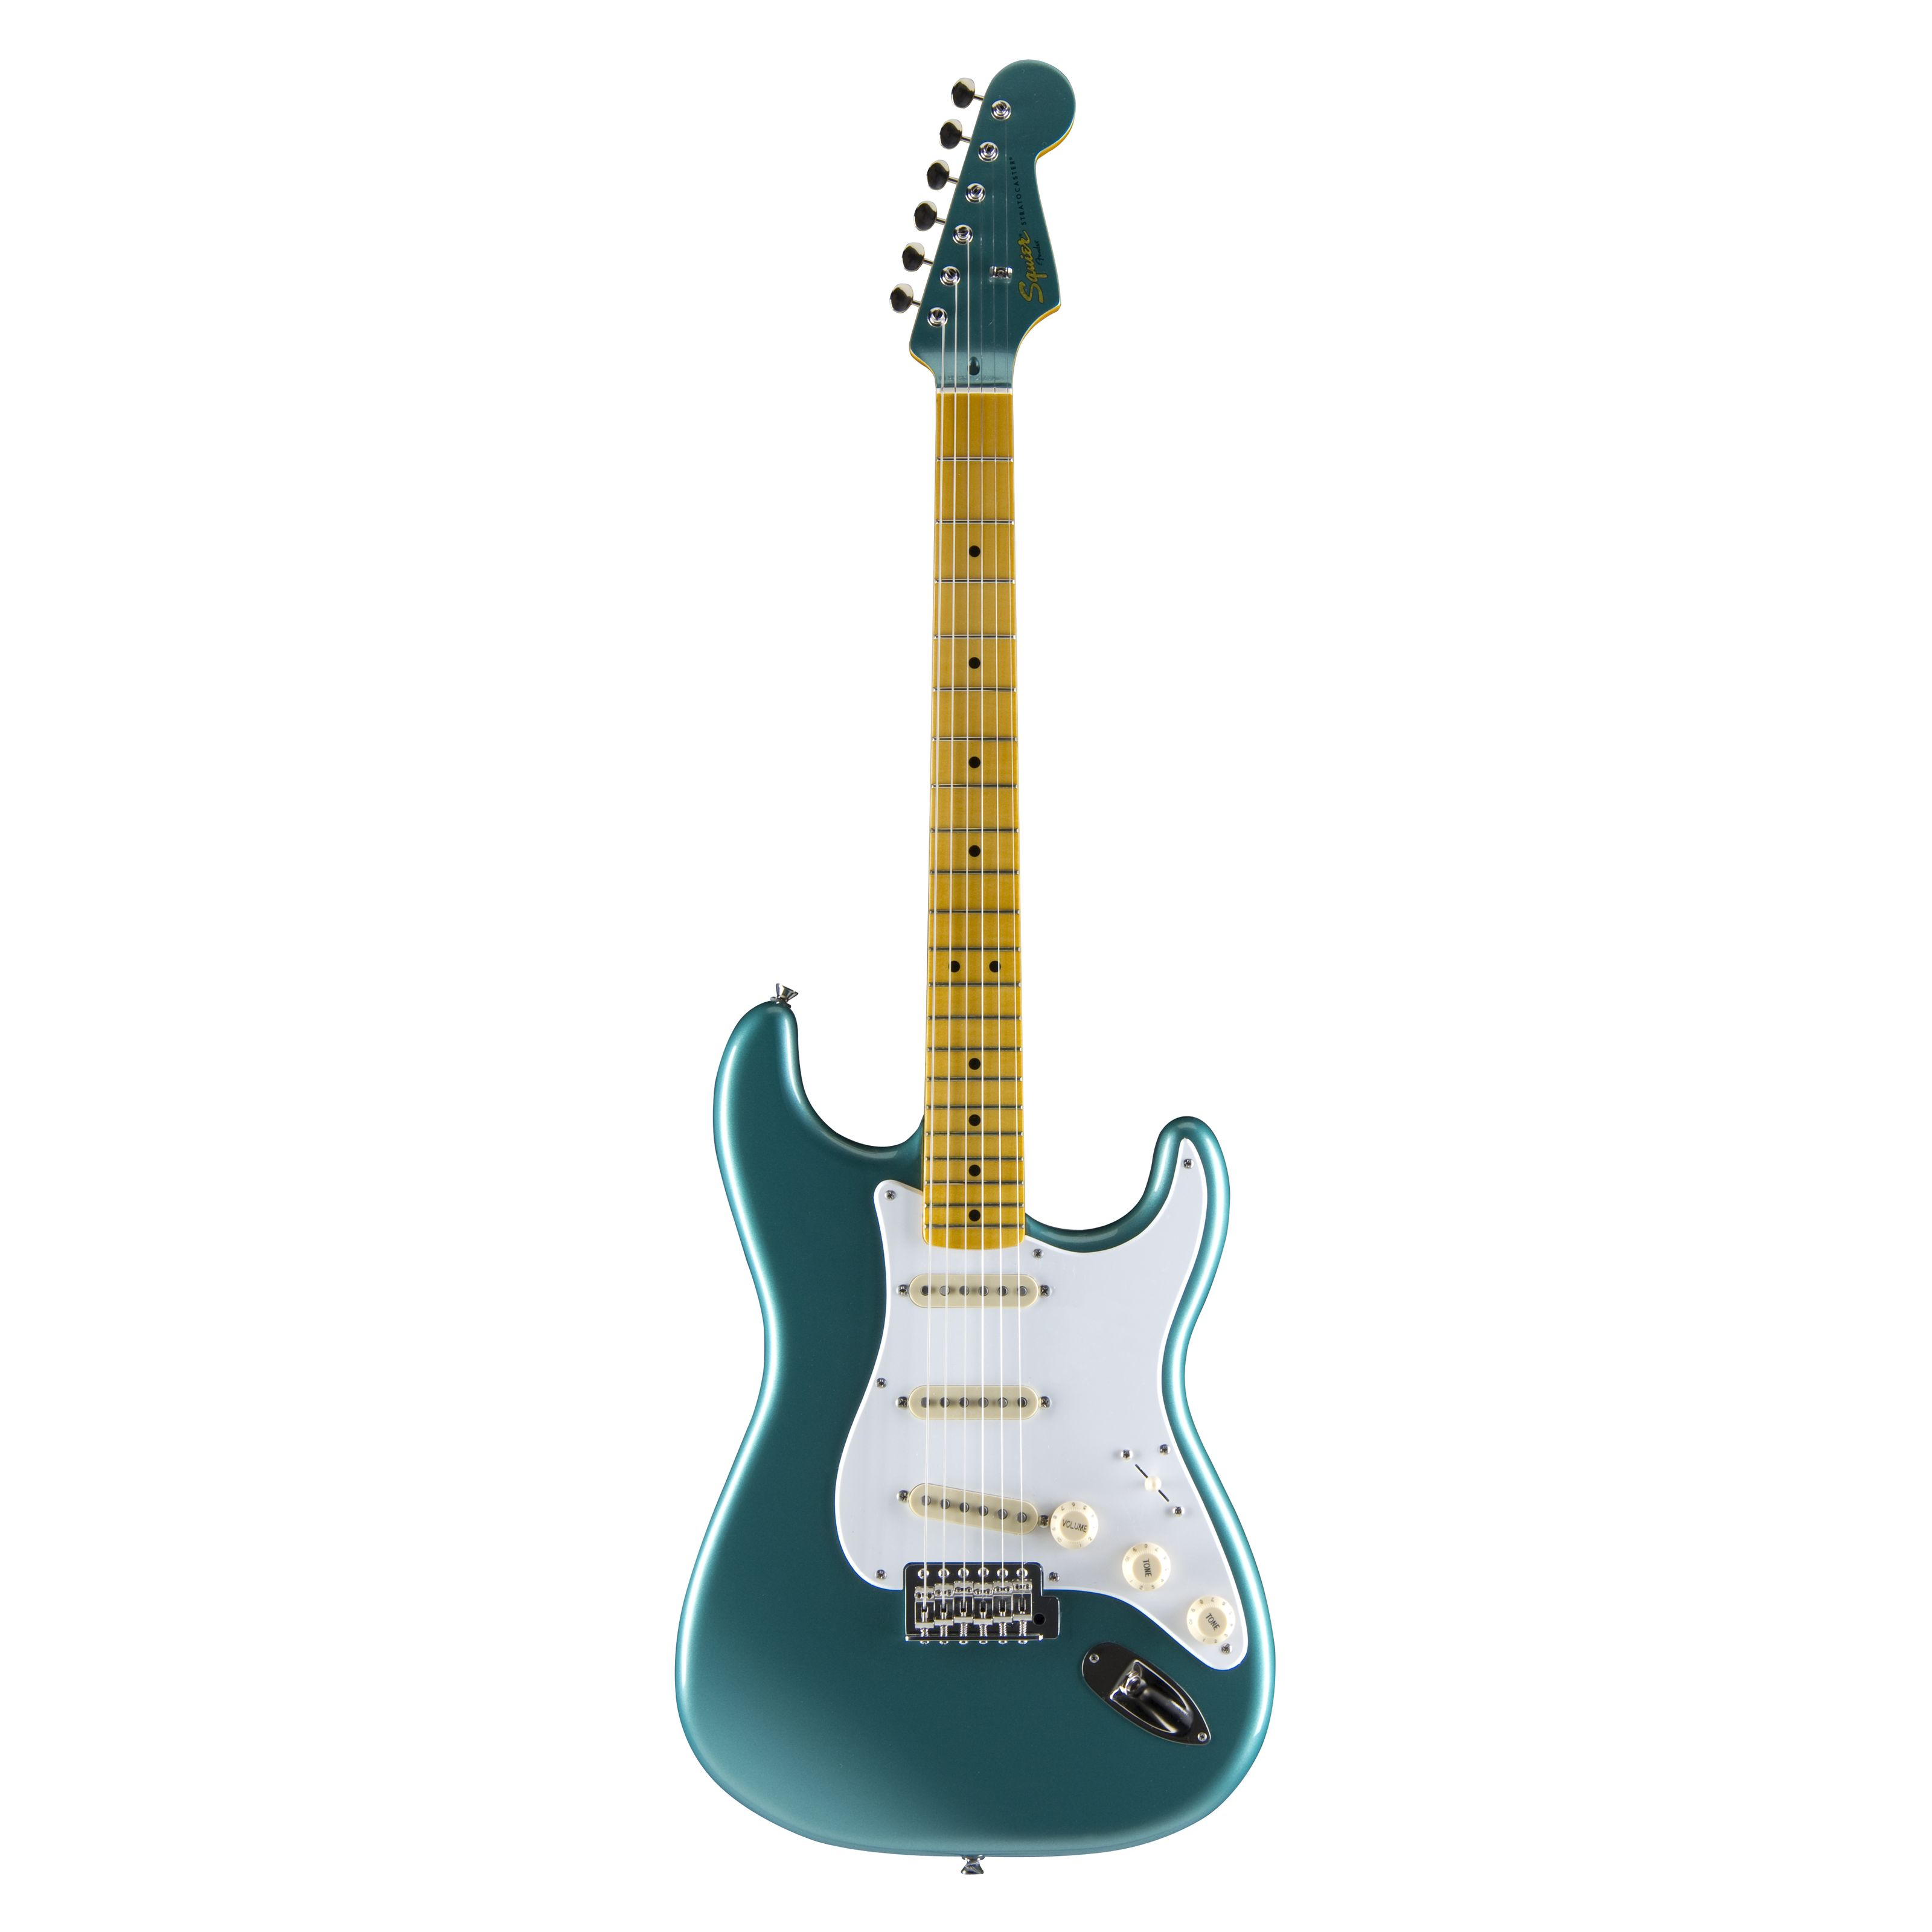 Fender Squier Classic Vibe Stratocaster 50s MN Sherwood Green